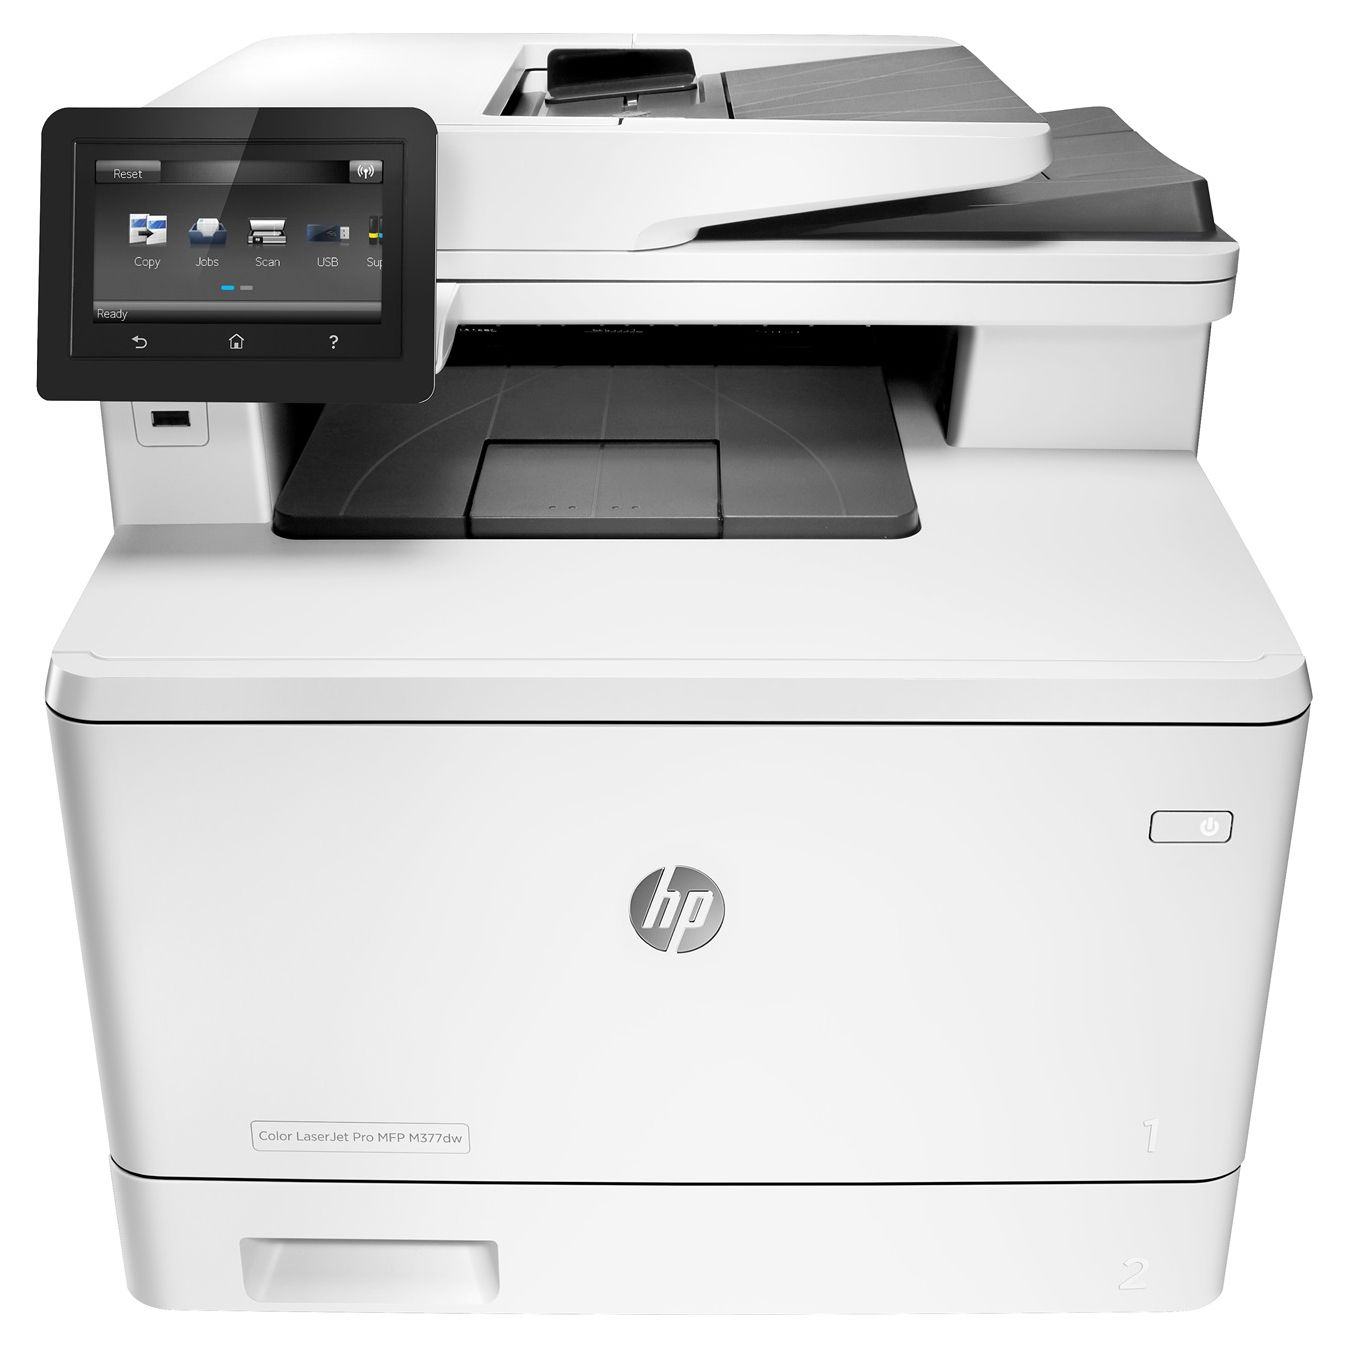 Multifunctionala Laser Color HP LaserJet Pro MFP M377dw, Duplex, A4, 24ppm, 600 x 600 dpi, Scanner, Copiator, USB, Retea, Wireless, Tonere Noi